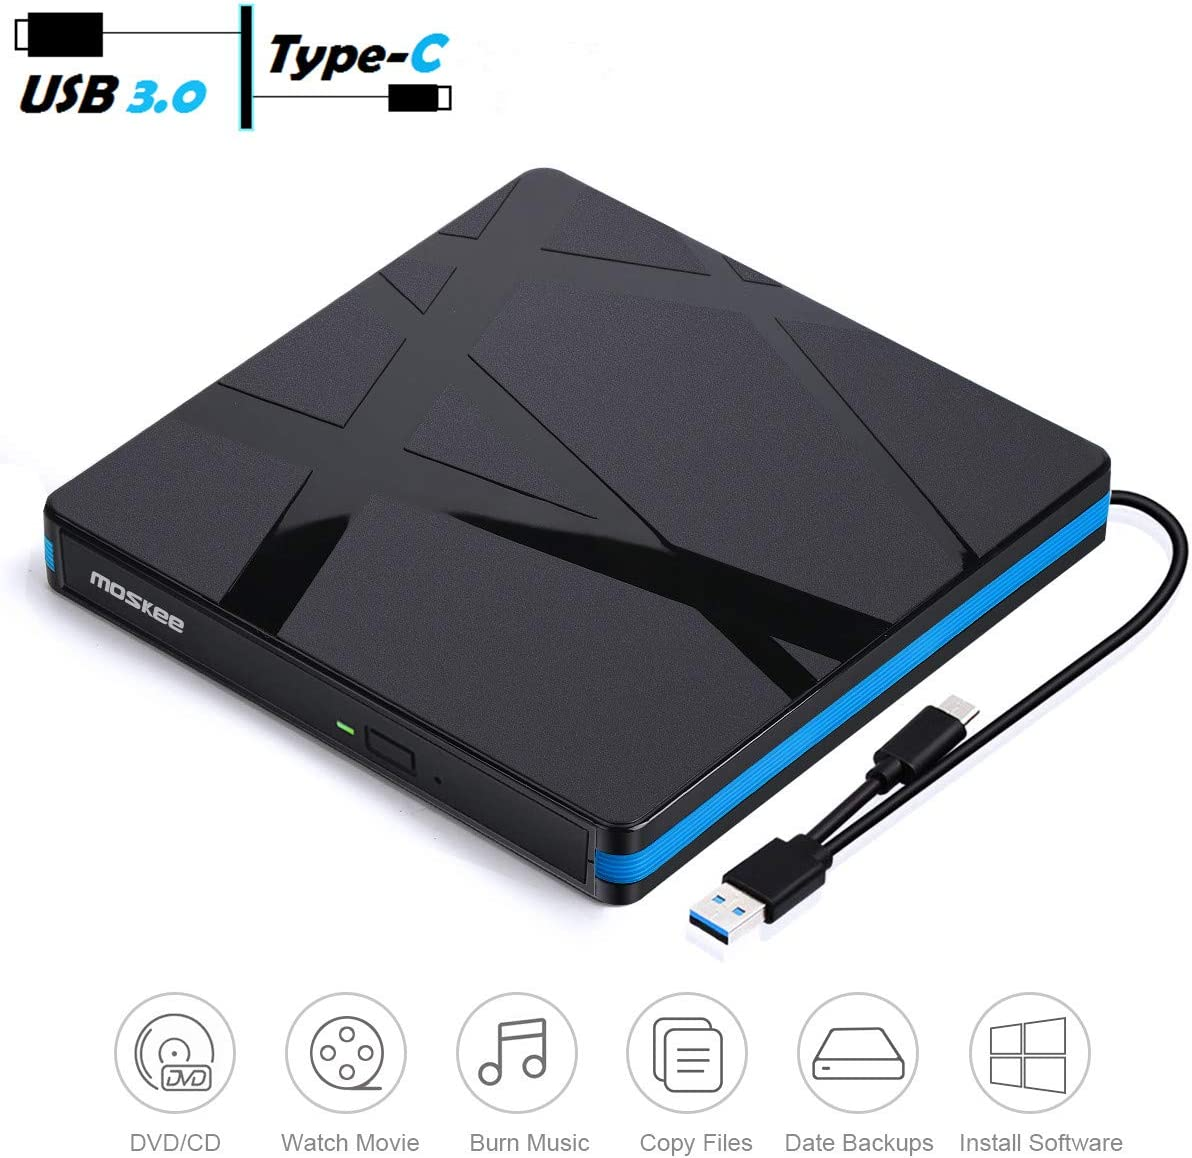 External CD DVD Drive, MosKee USB 3.0 USB-C Portable VCD/CD/DVD Drive CD/VCD Rewriter Burner Writer Support CD/DVD+/-RW etc, External DVD Drive for Laptop/MacBook/iMac/Destop, Windows/Linux/Mac OS